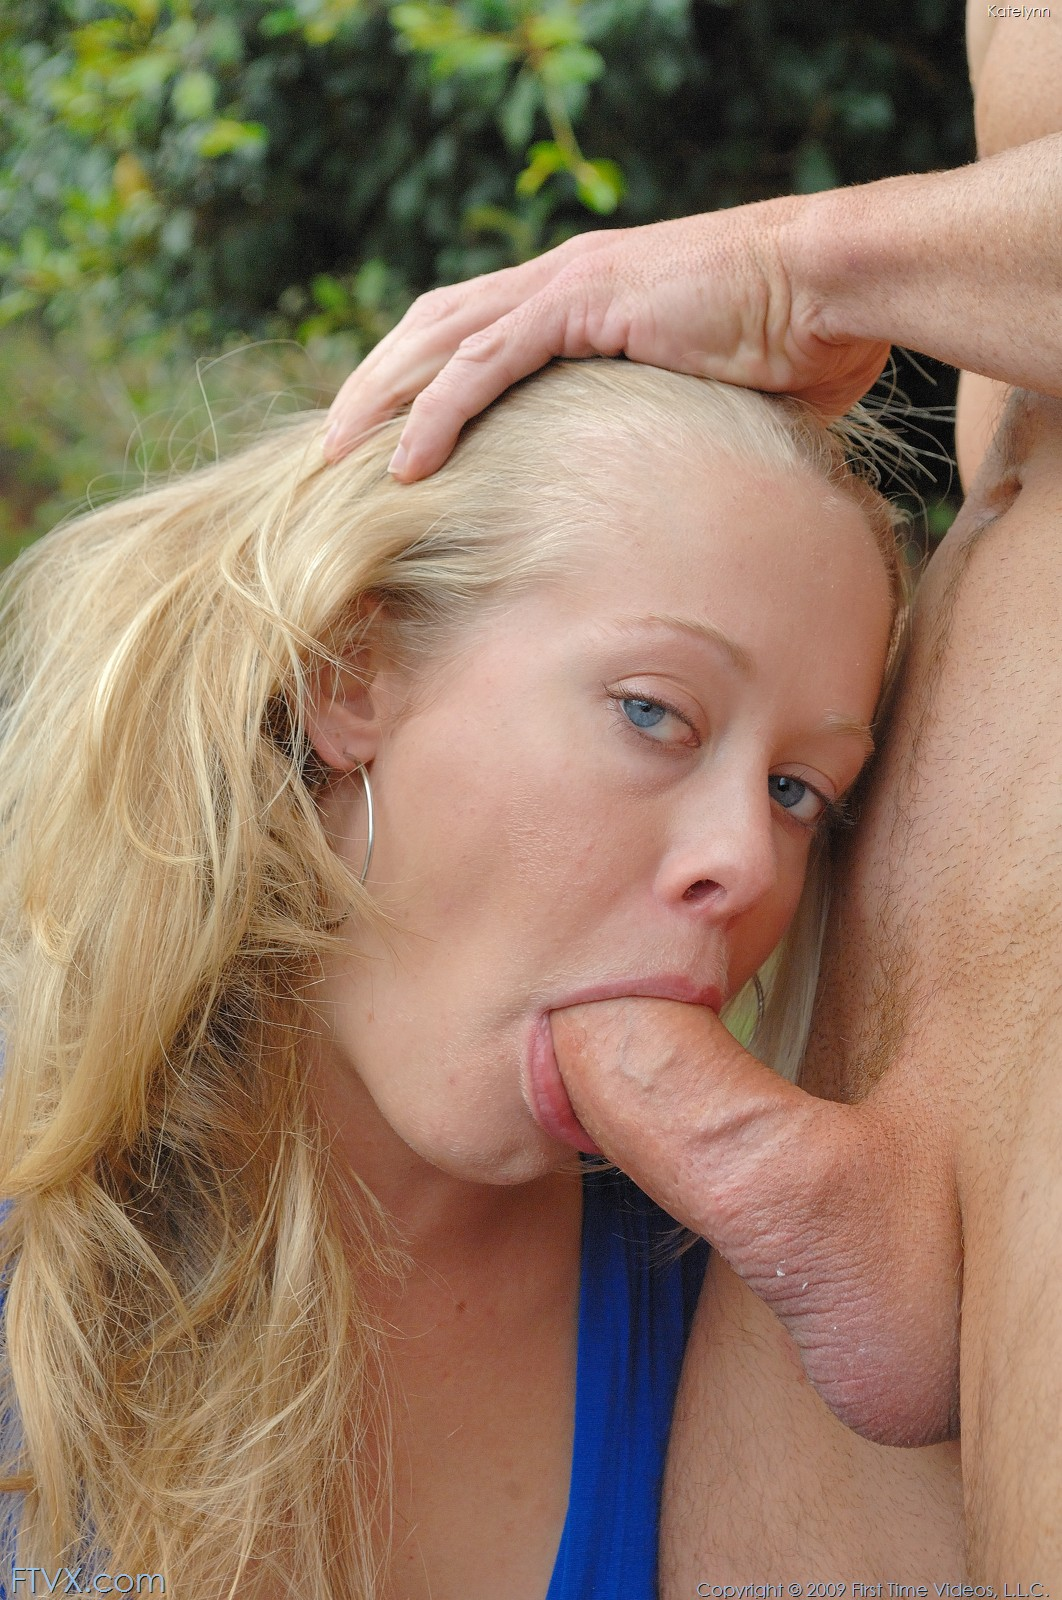 Fat chics sucking cock join. agree